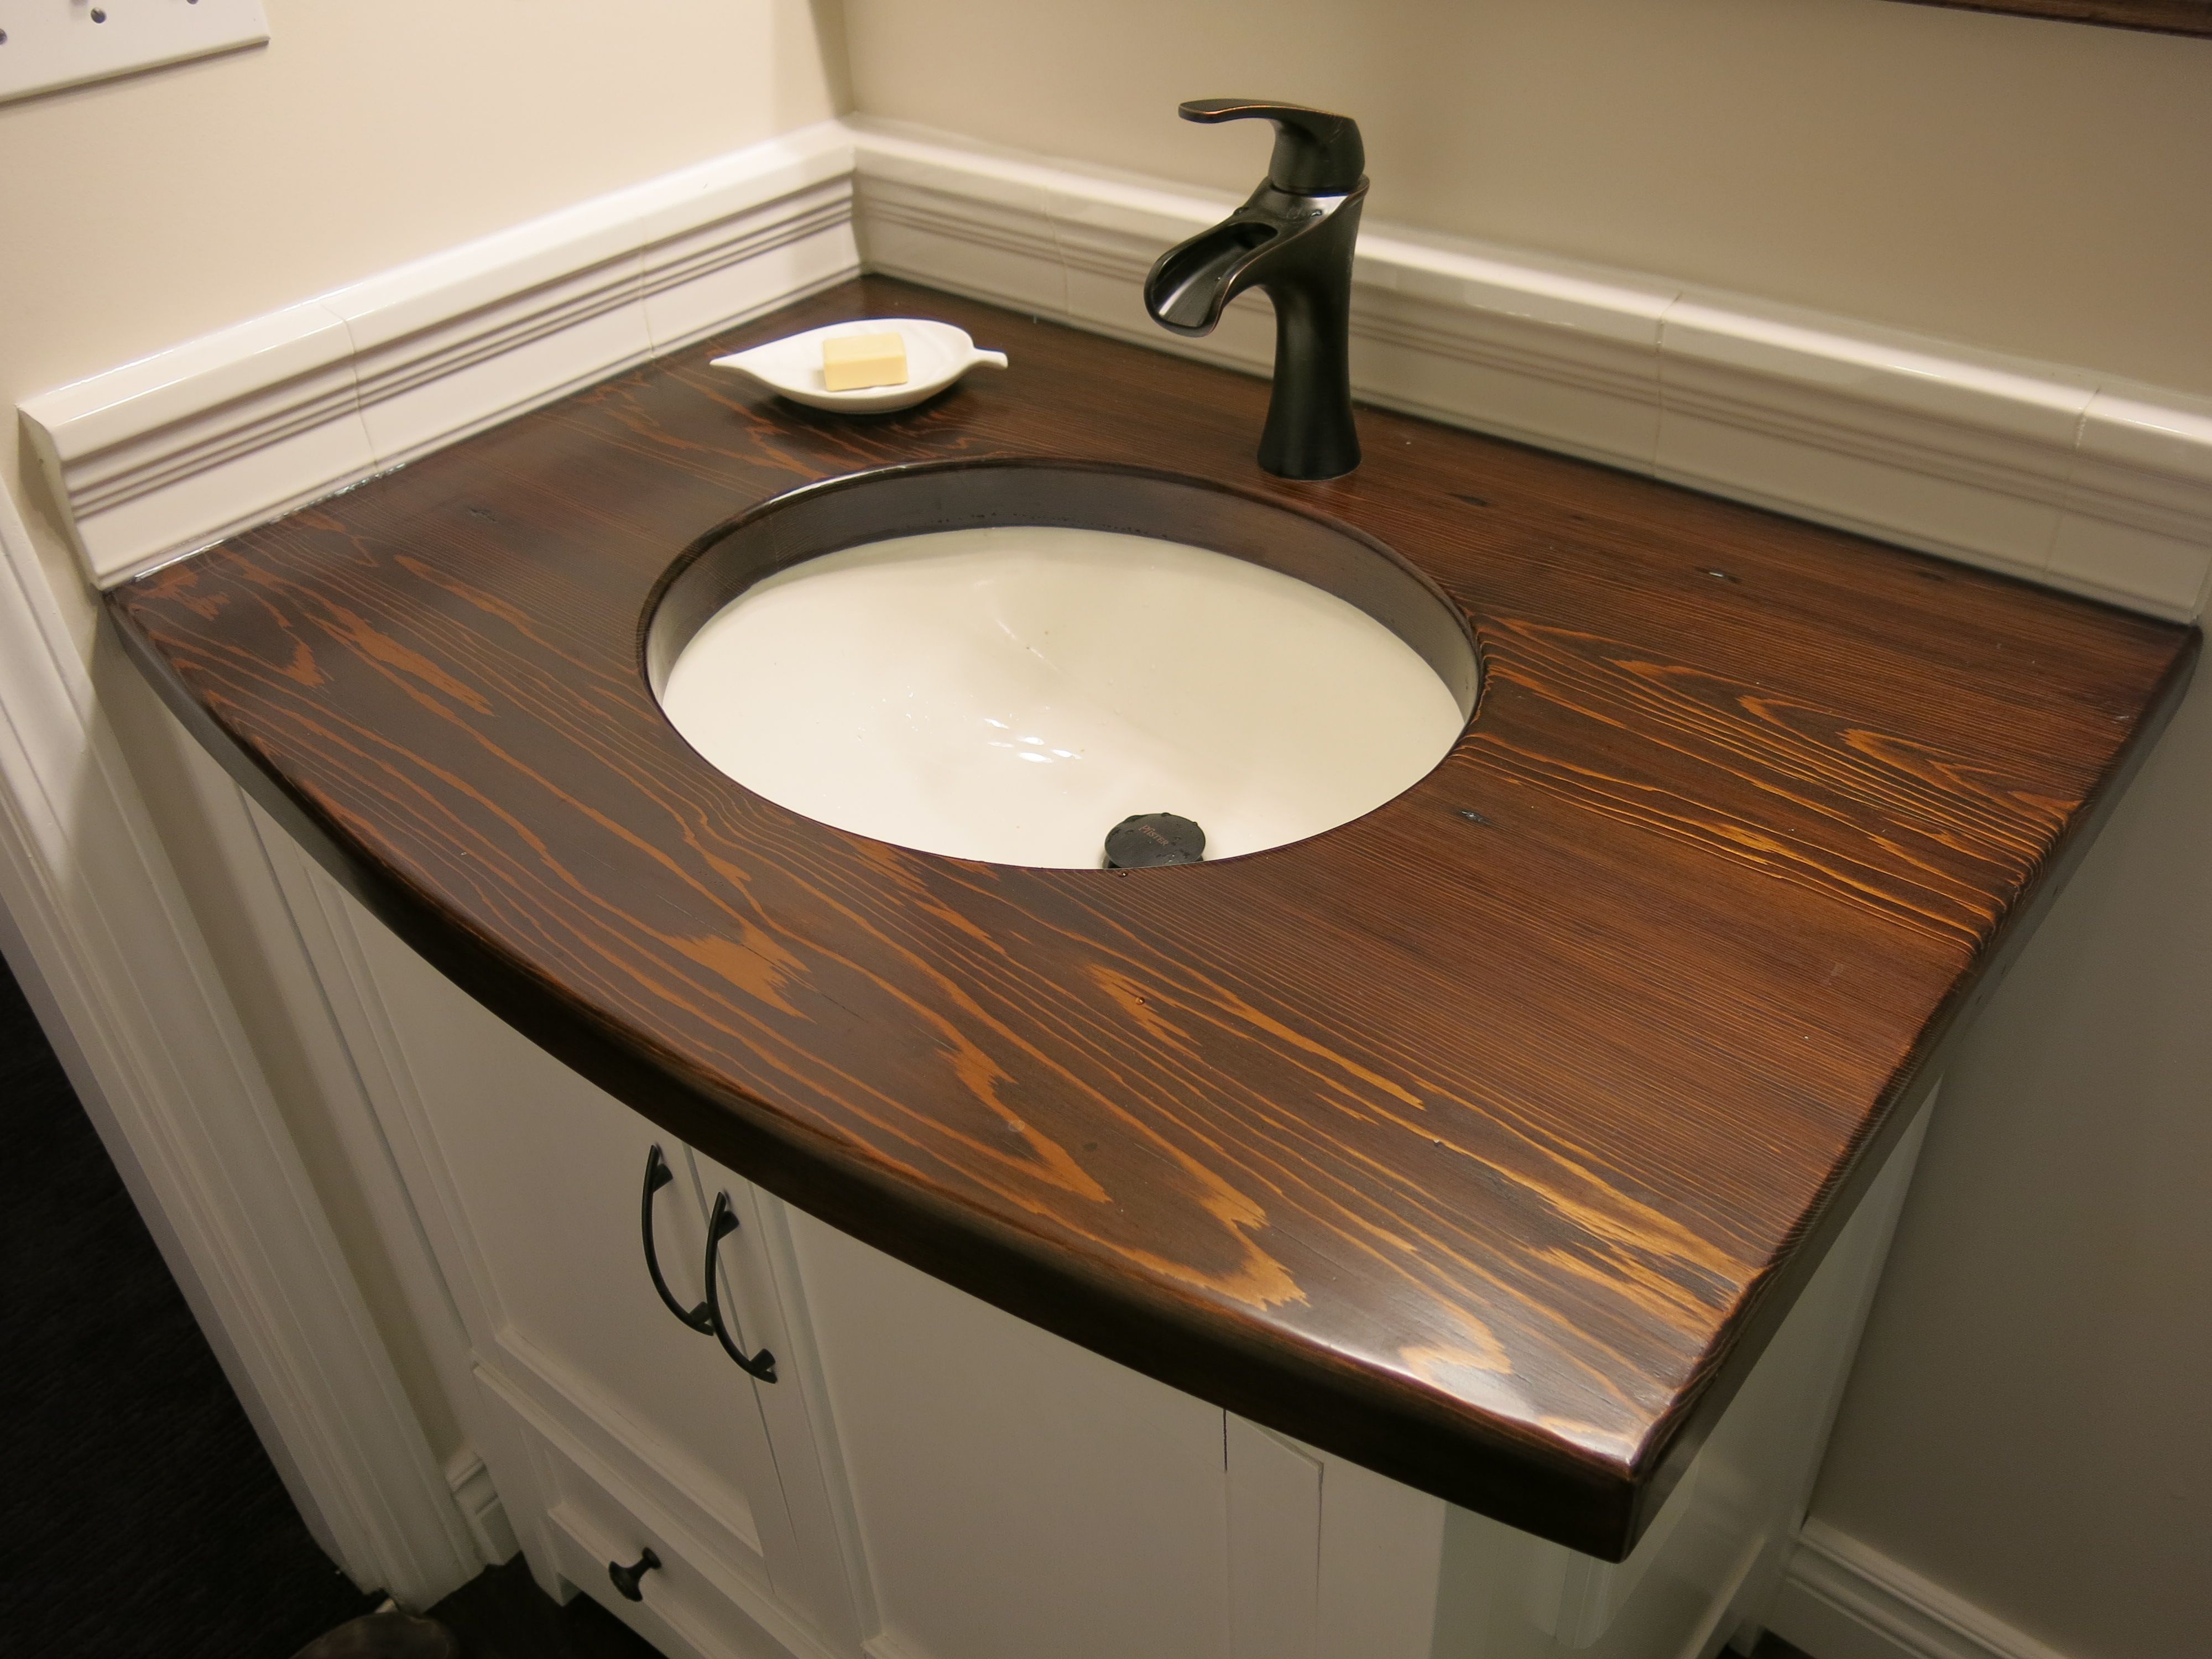 Wooden Bathroom Sink Cabinet Countertop Oil Rubbed Bronze Faucet Undermount Sink Curved